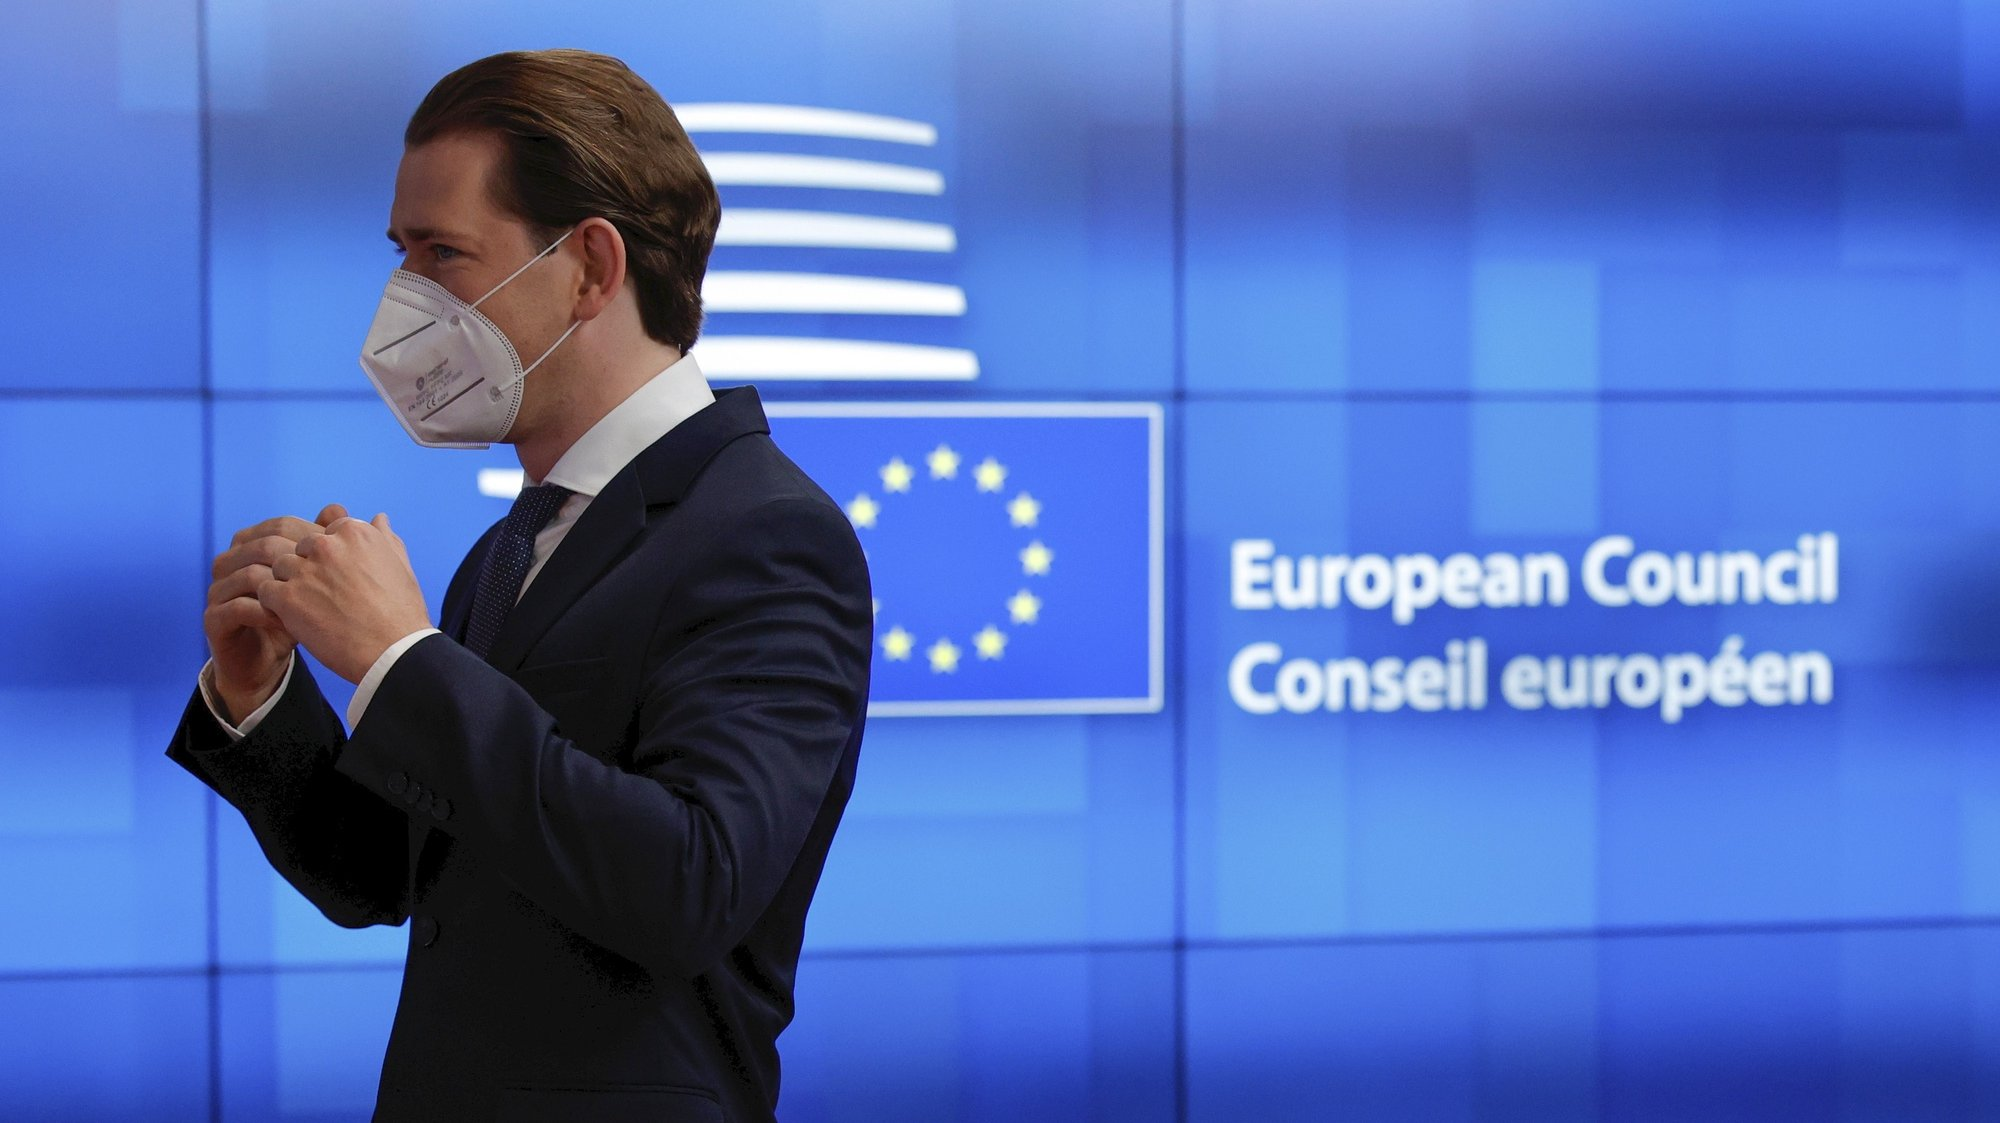 epa09300881 Austrian Chancellor Sebastian Kurz leaves at the end of an EU summit at the European Council building in Brussels, Belgium, 25 June 2021. EU leaders met in Brussels for two days to discuss COVID-19, economic recovery, migration and external relations.  EPA/OLIVIER MATTHYS / POOL